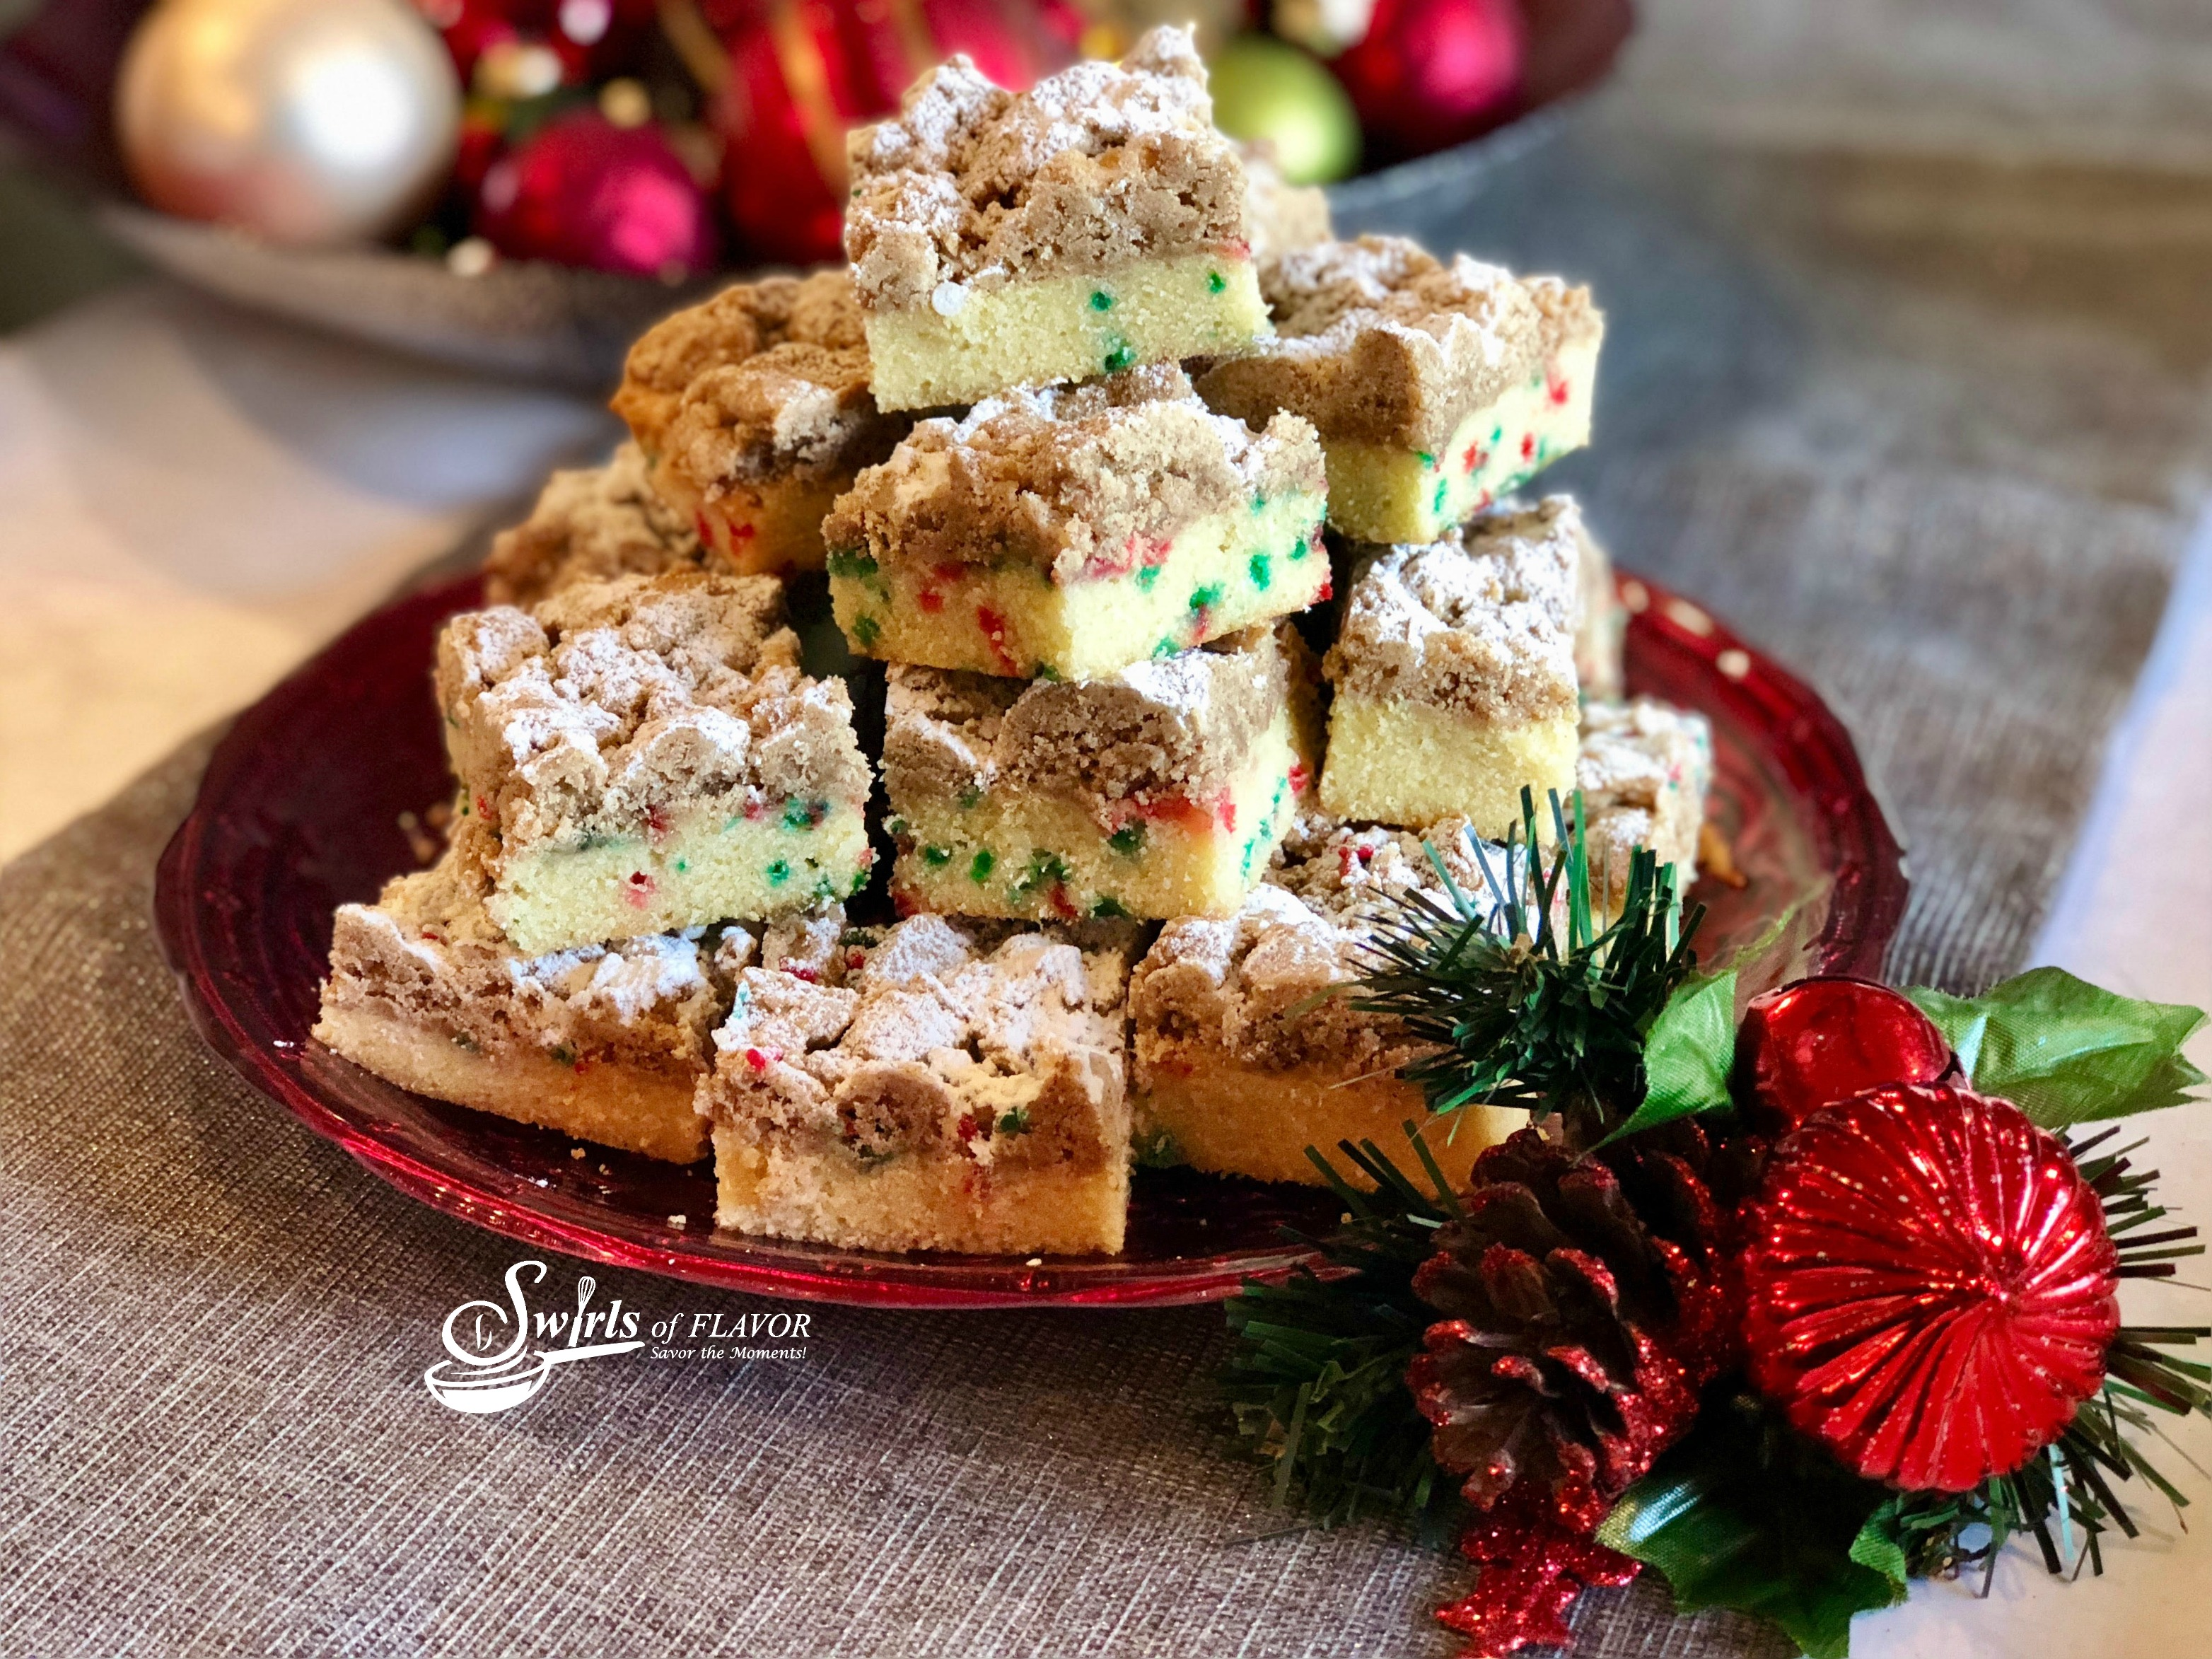 Christmas Crumb Cake with holiday sprinkles and ornaments